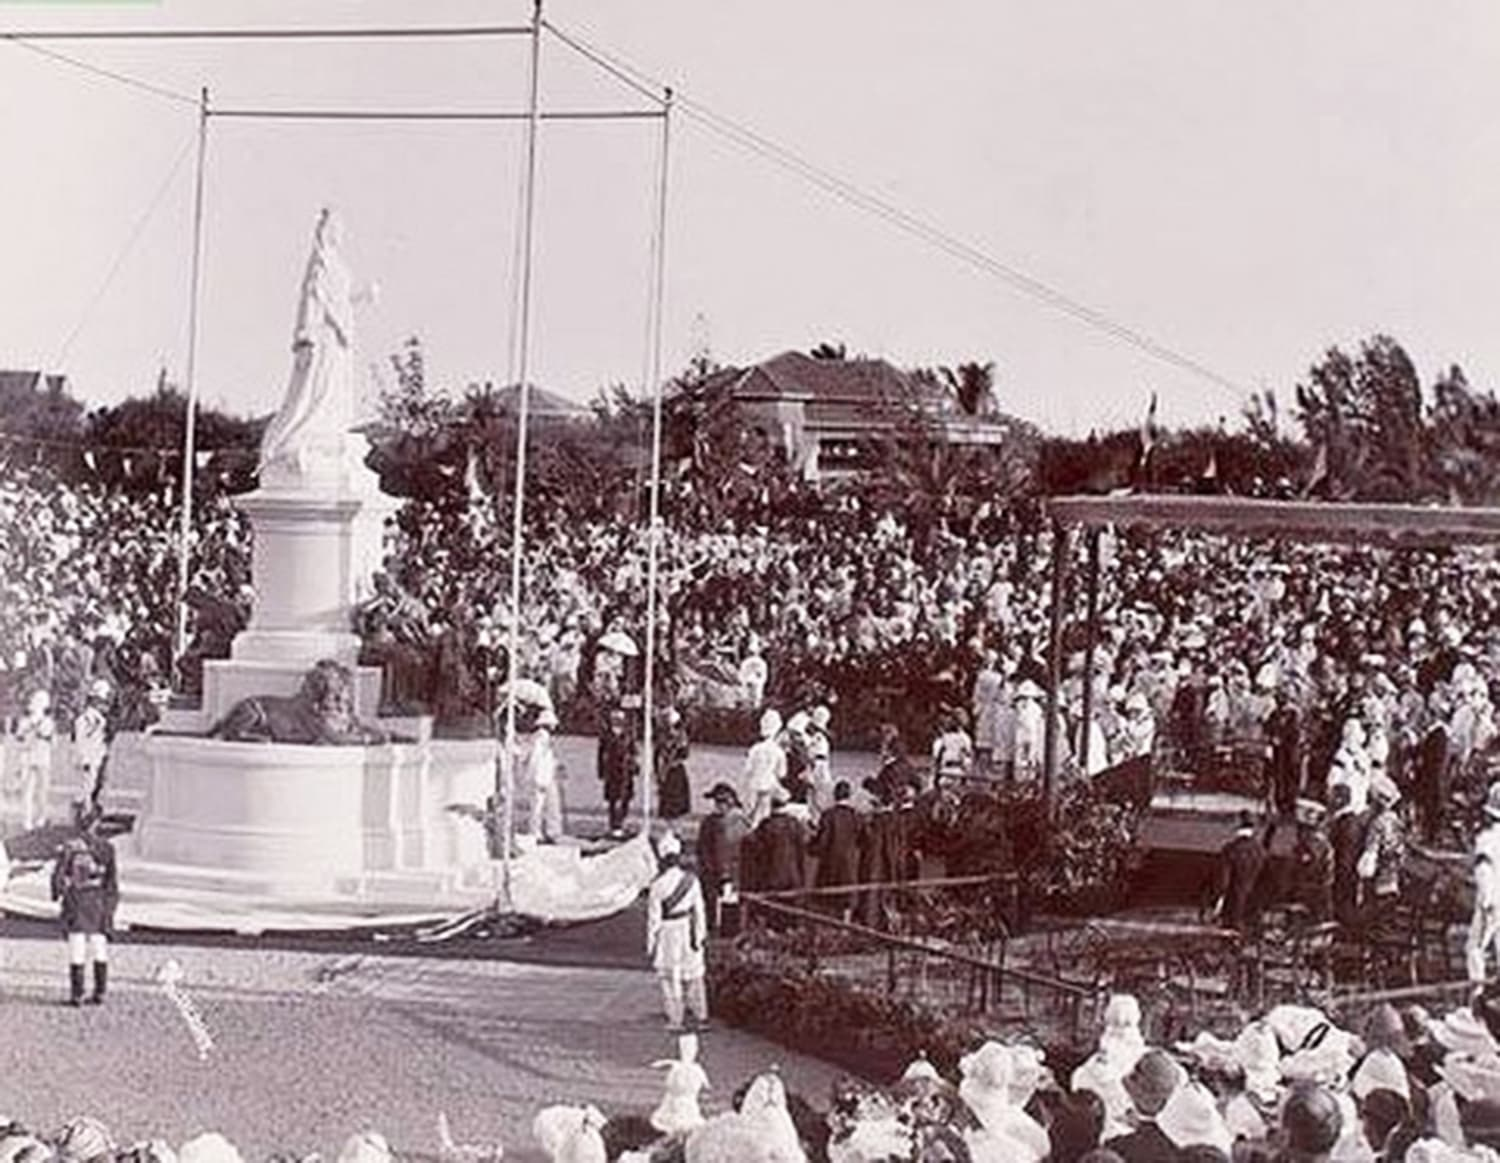 Statue of the British Queen being unveiled at Karachi's Frere Hall/Park during a ceremony.